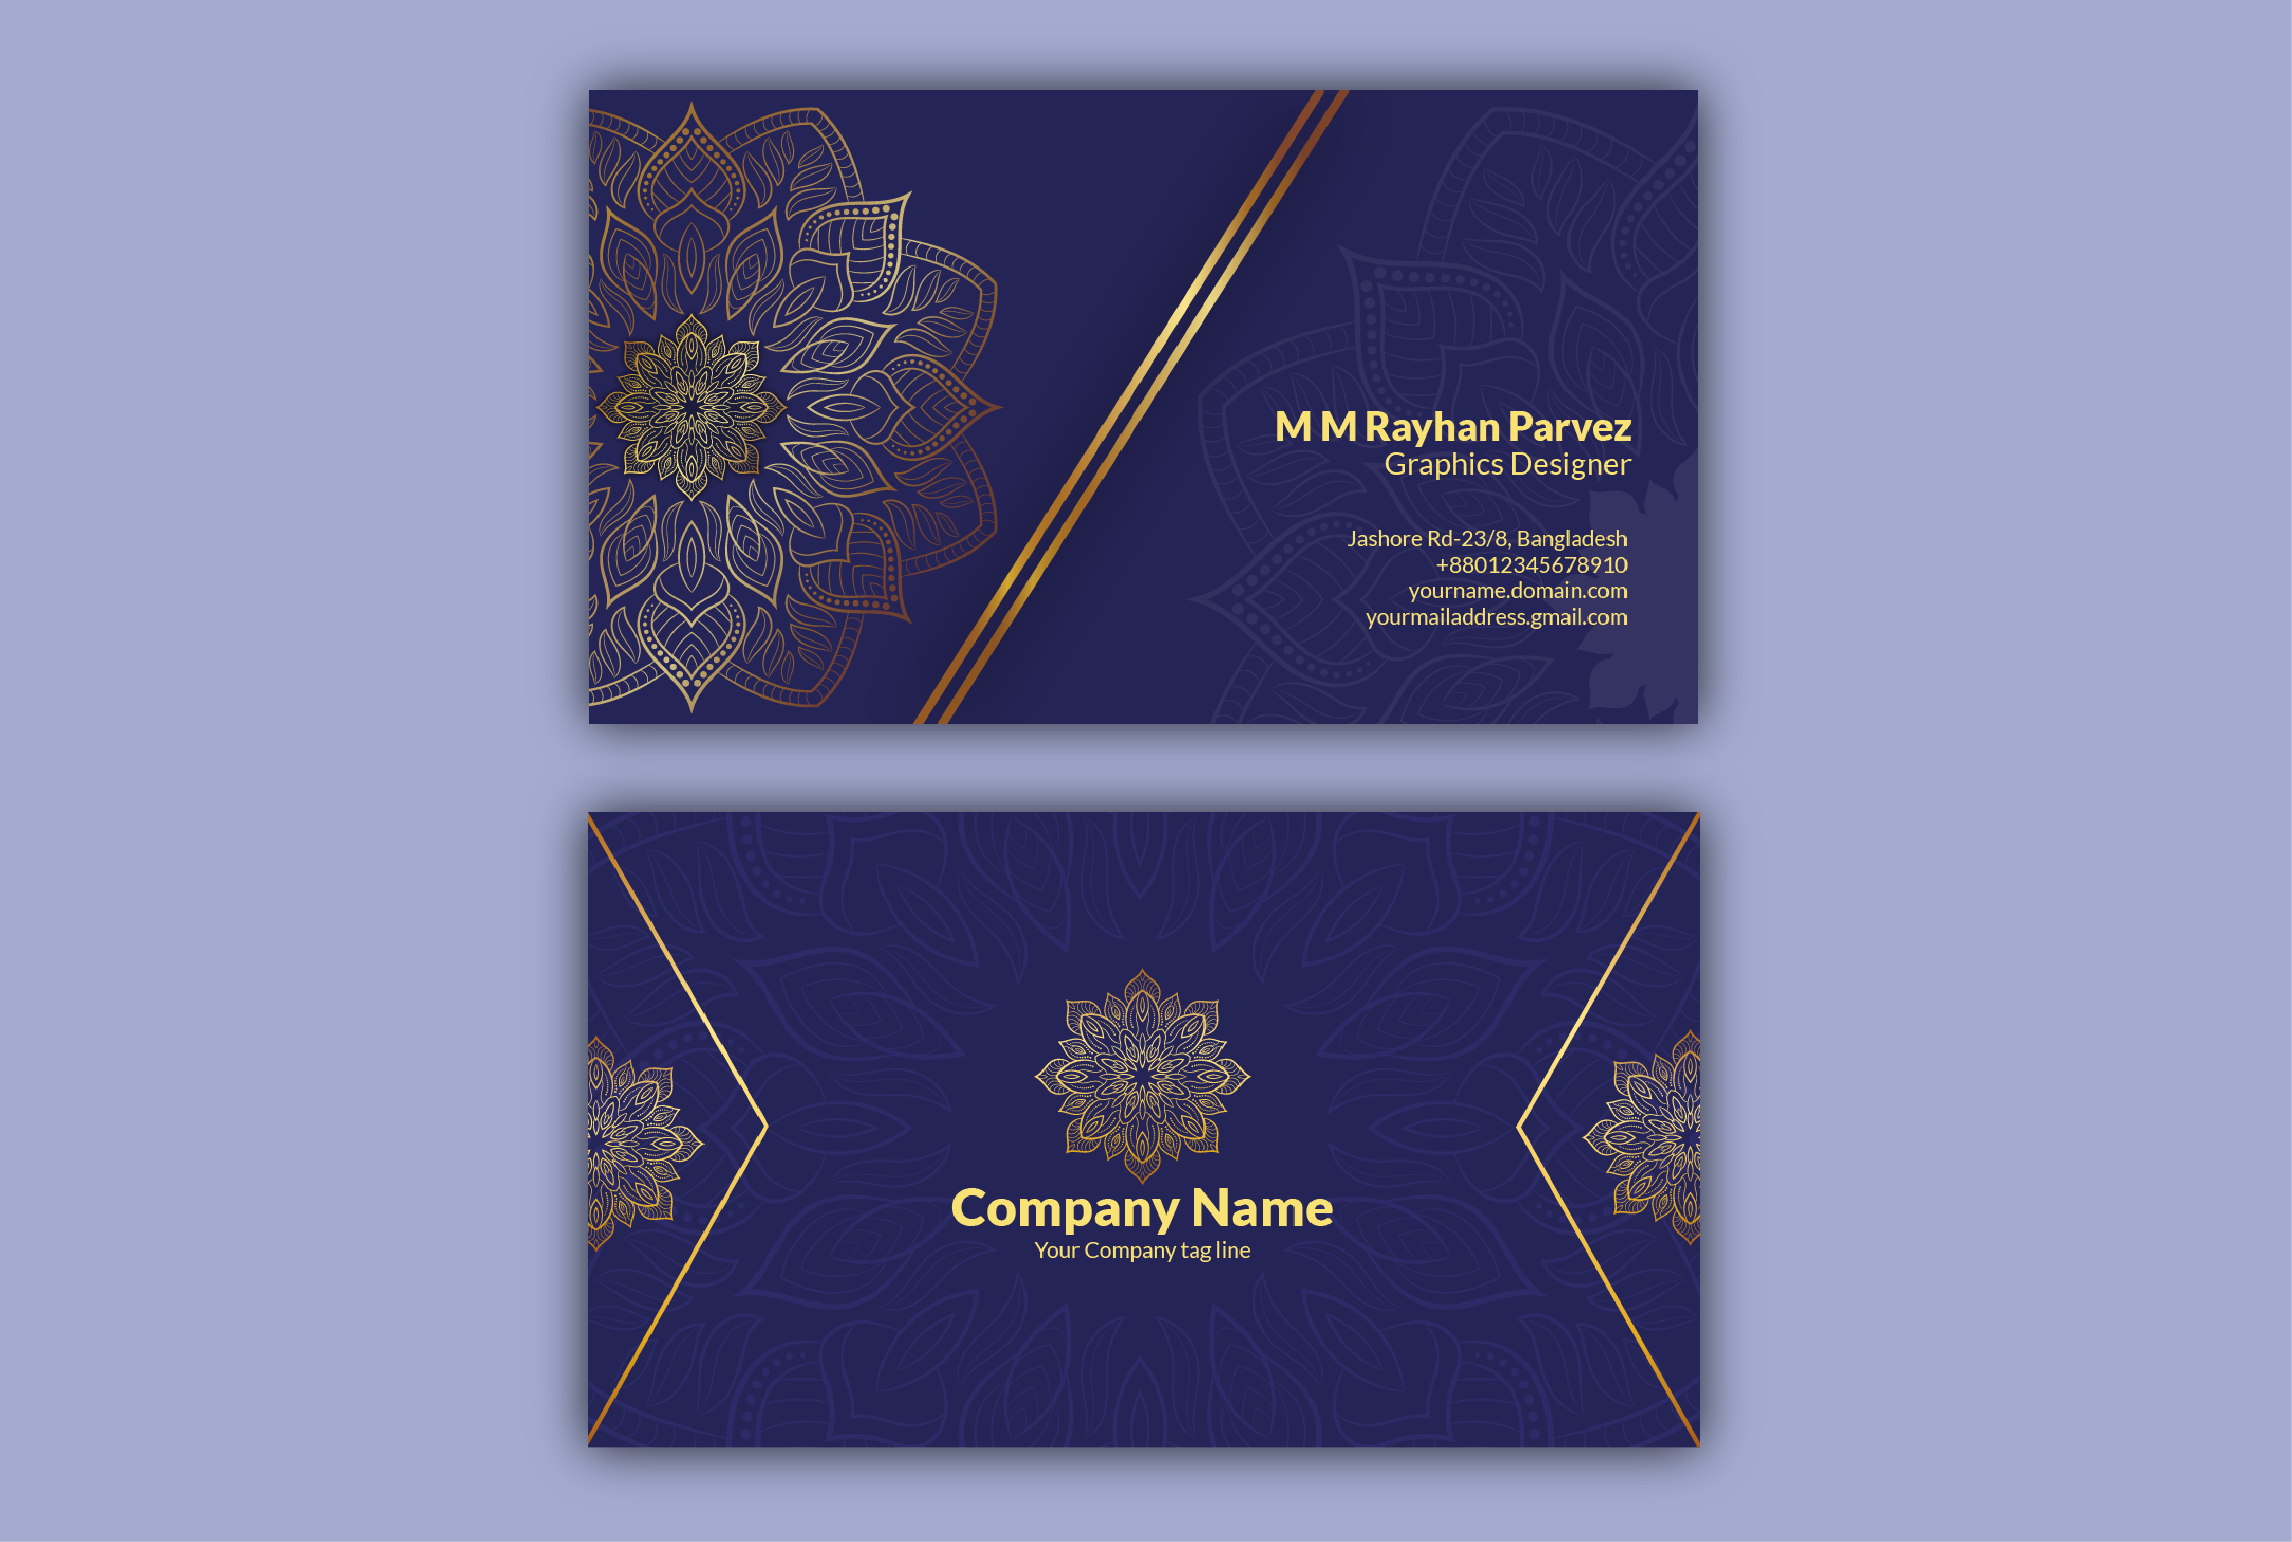 I will design a Unique Professional & Premium quality Business Card for you within 24 hours